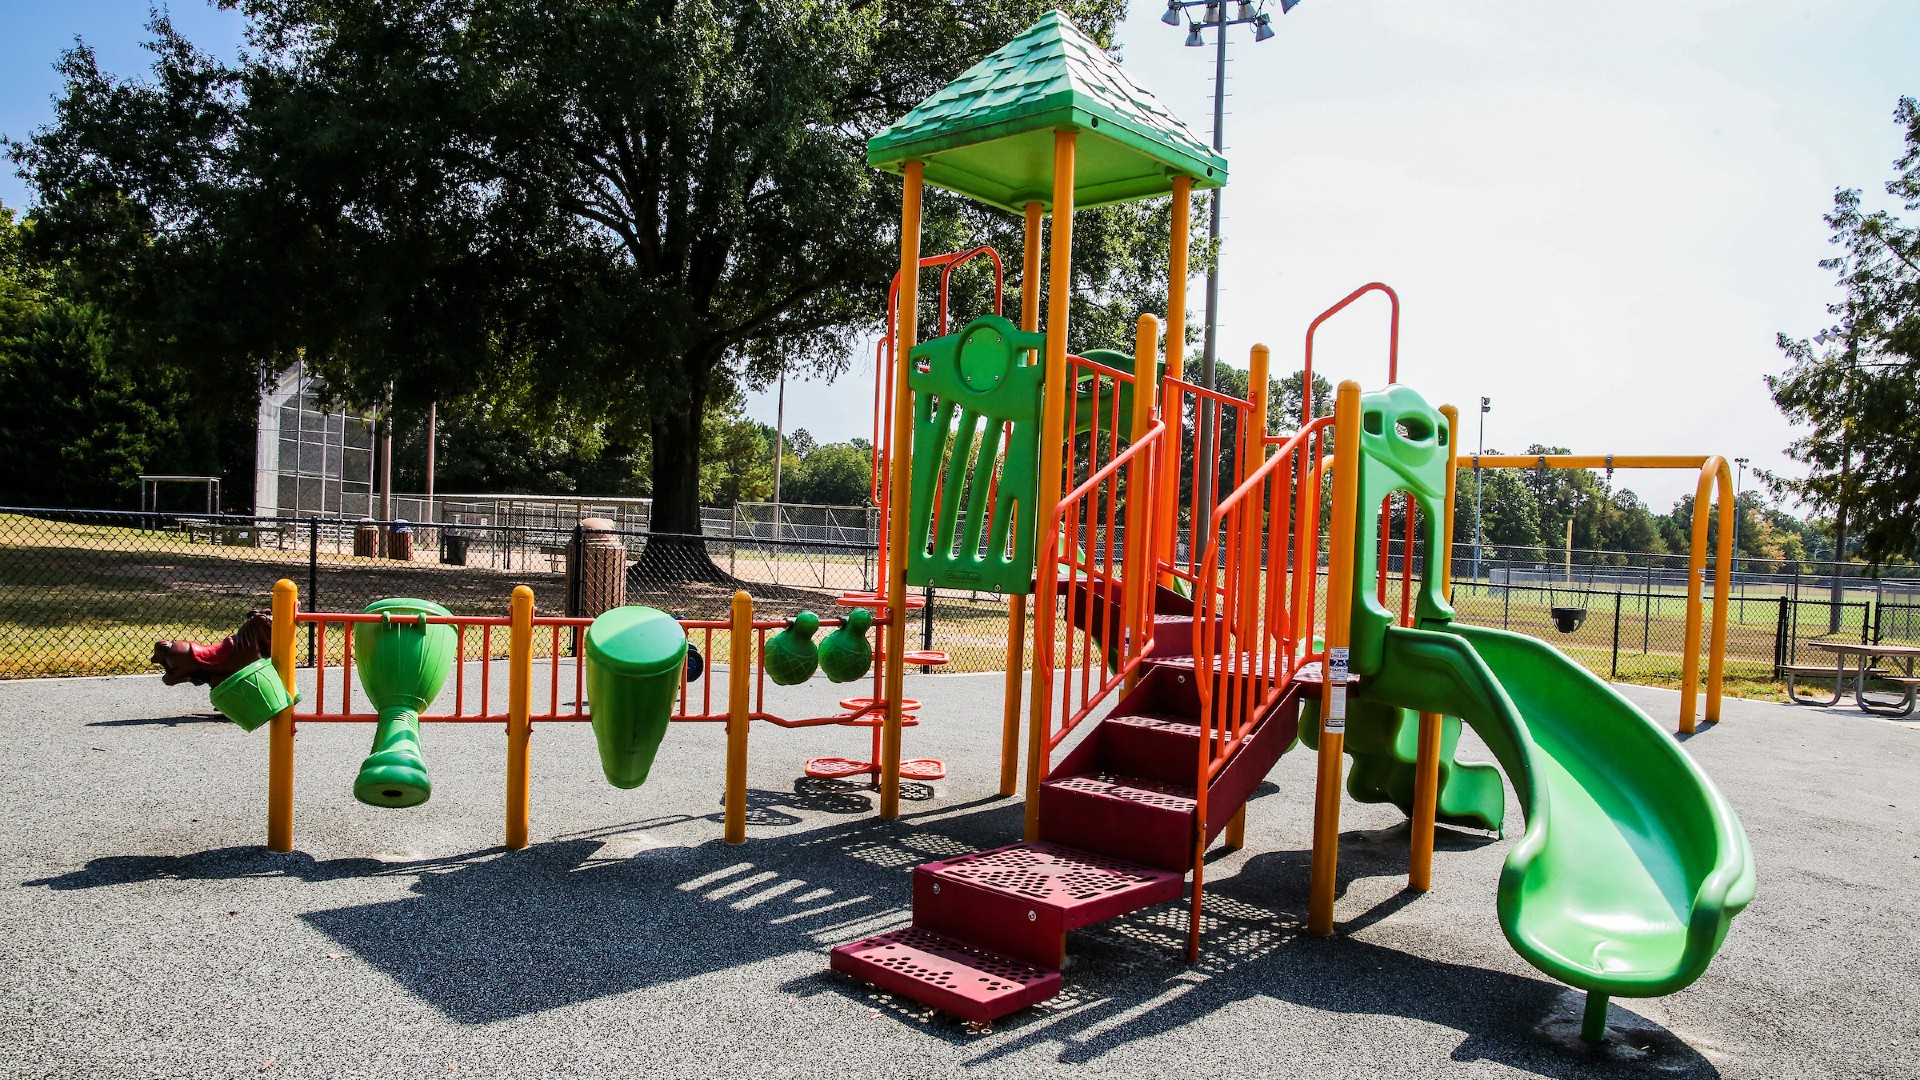 Playground structure with slide, bridge, pole, drums, steps and more